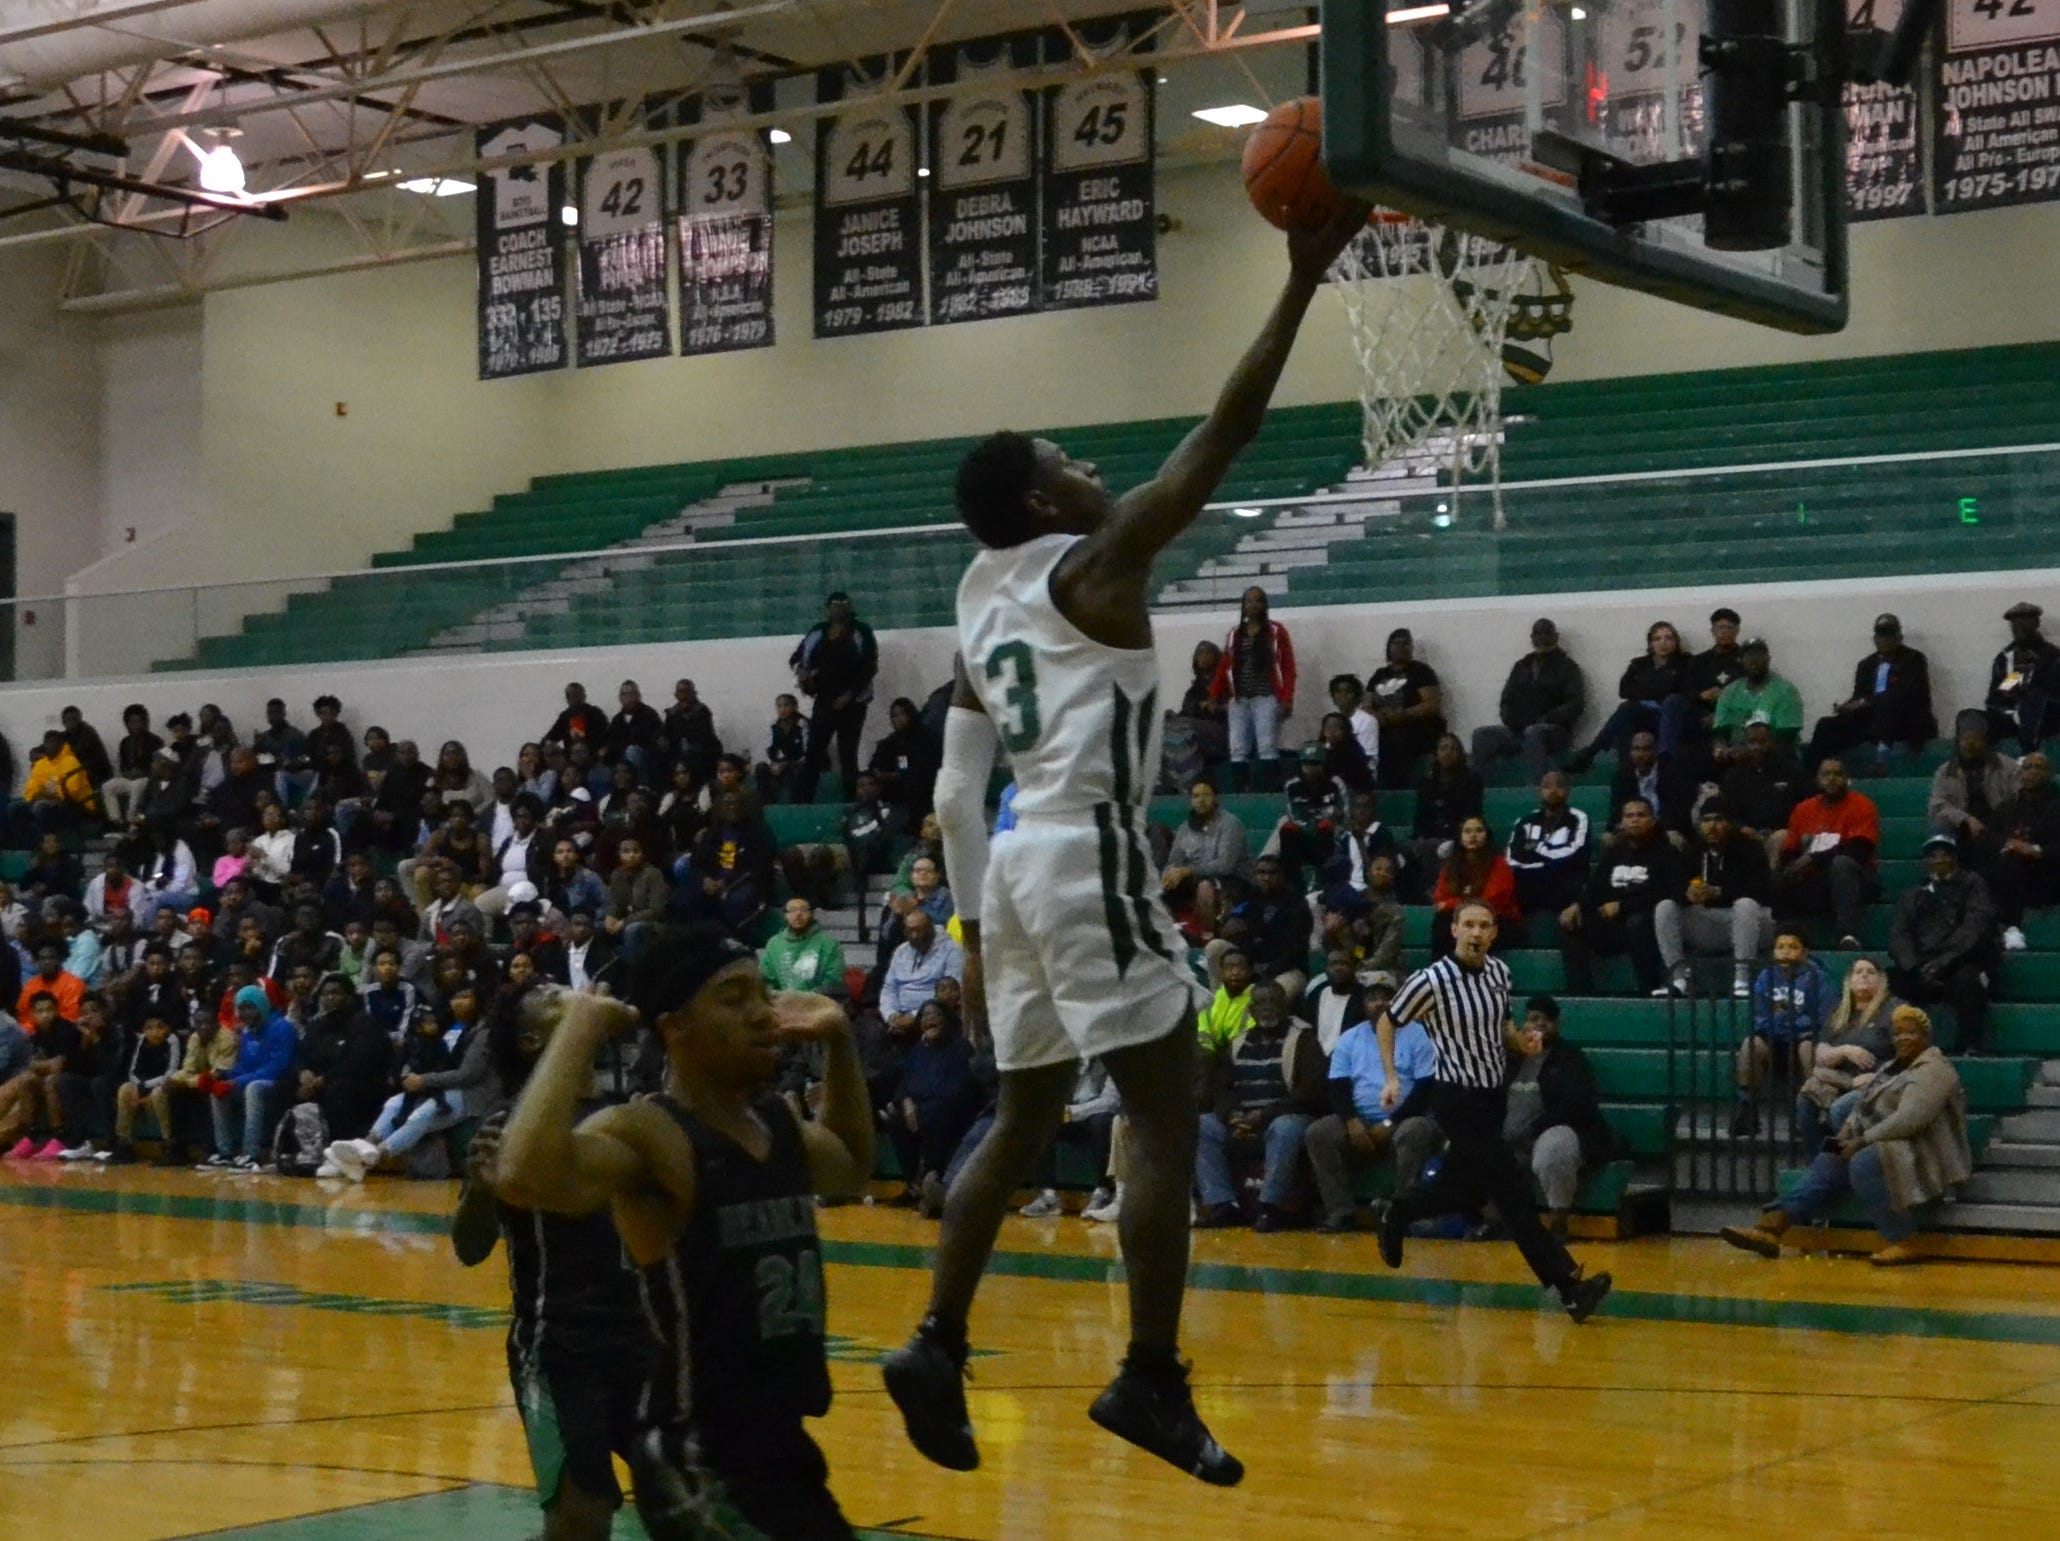 Peabody's Melvion Flanagan (3) get the layup for the Warhorses. The Peabody boys basketball team played the Bossier Bearkats Tuesday night at the Emerald Palace. Peabody got the win 72-67.